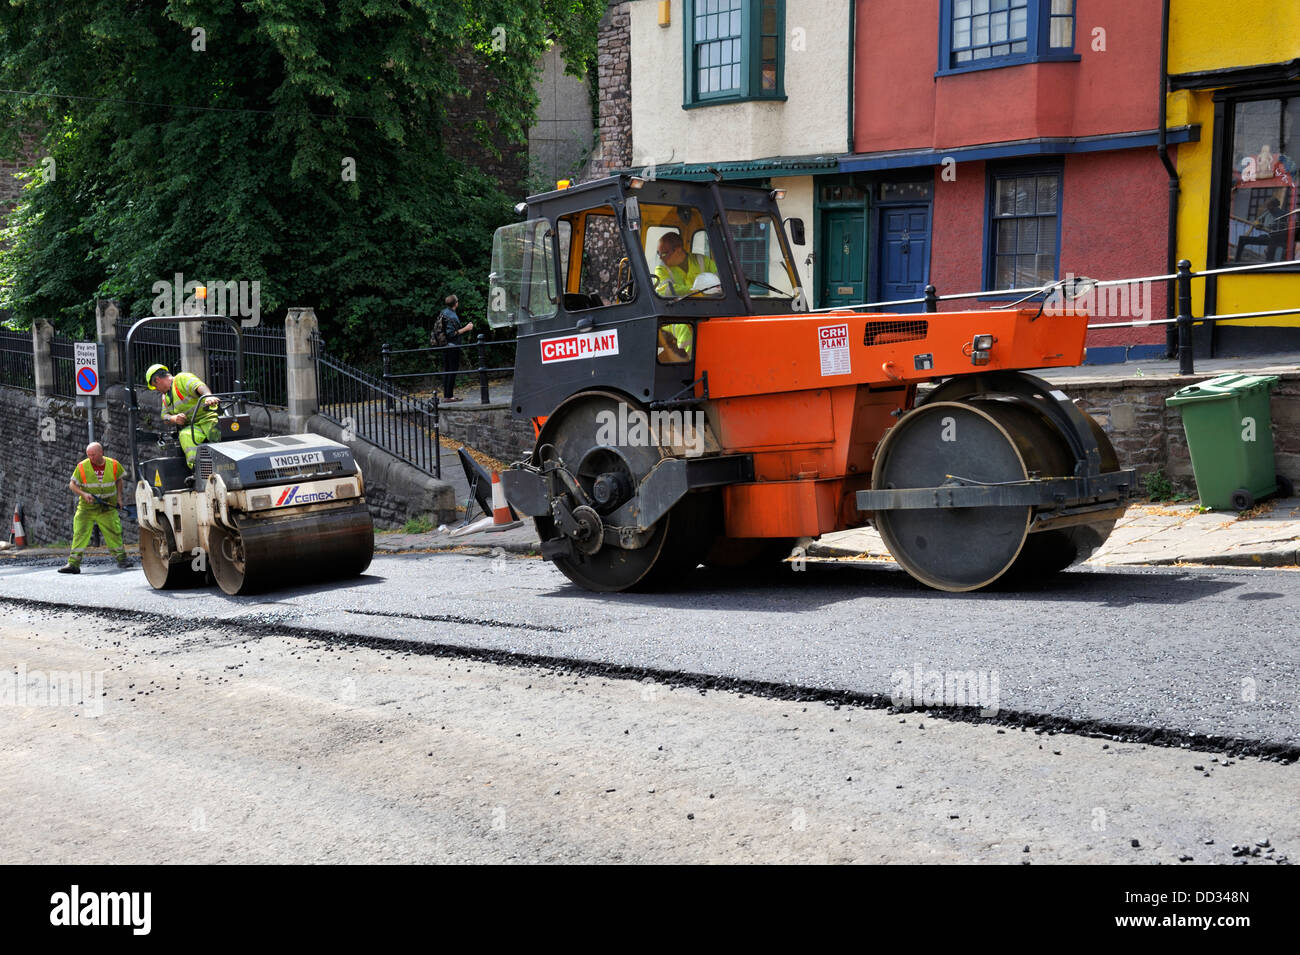 Large and small road rollers compacting asphalt during road resurfacing - Stock Image